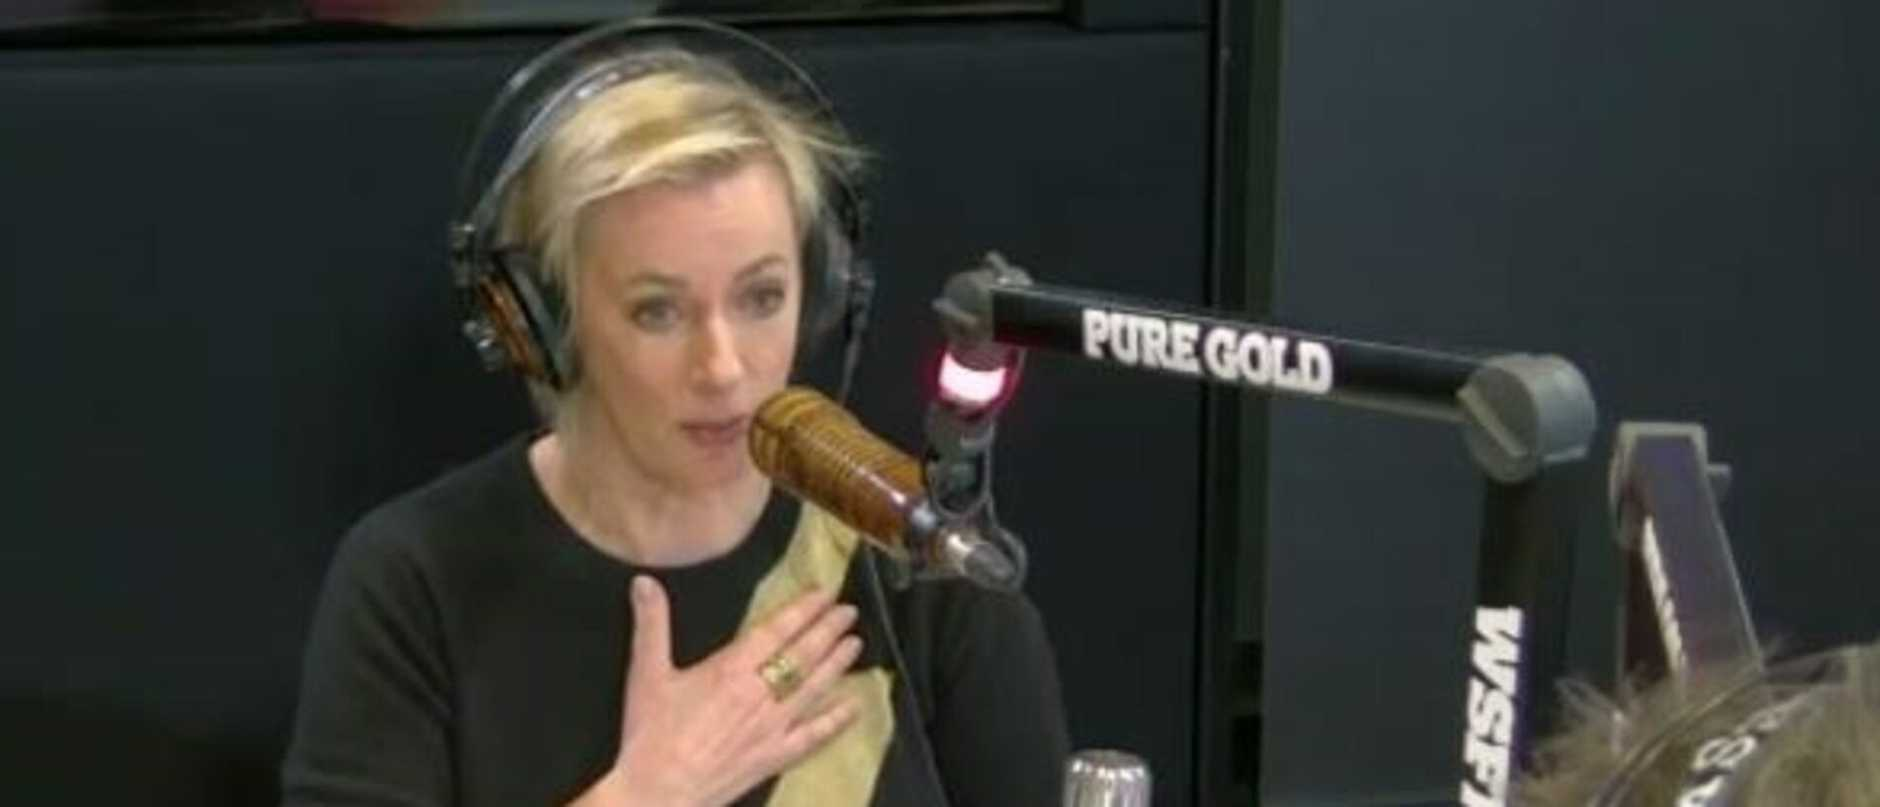 Amanda Keller on radio talking about the Gold Logie lossto Tom Gleeson. Picture: Supplied